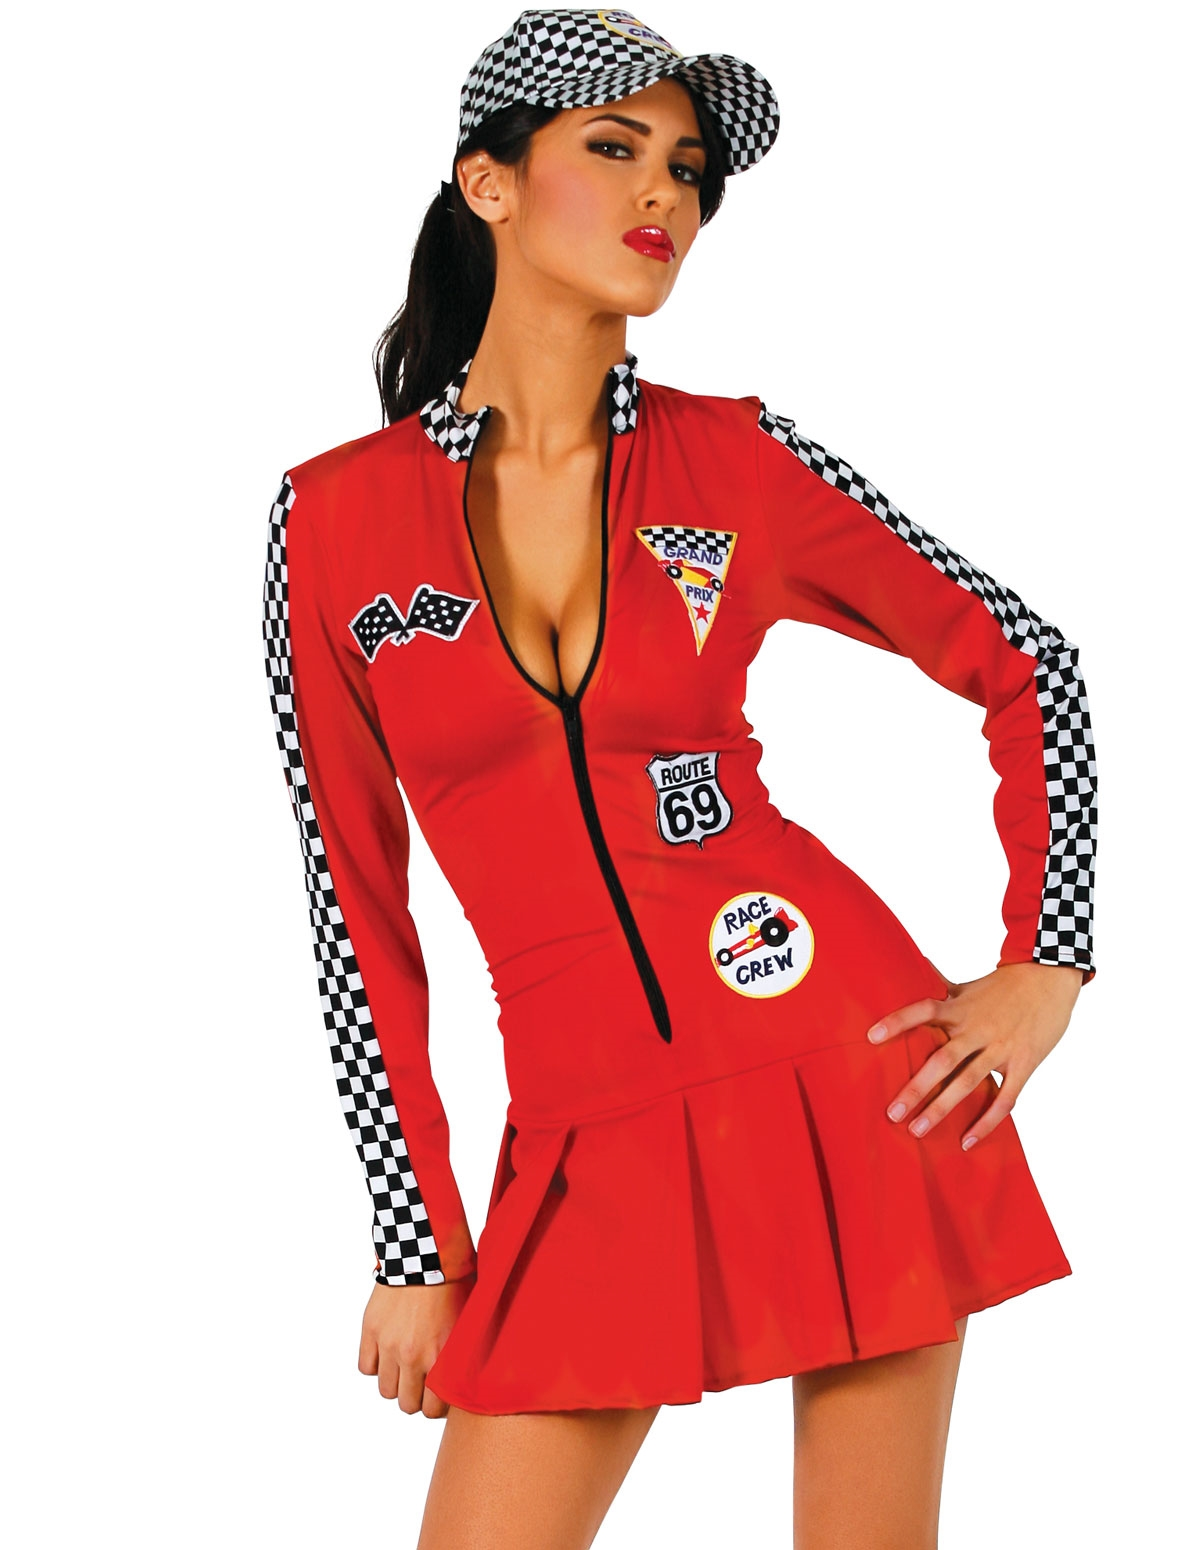 1Pc Racer Girl Costume